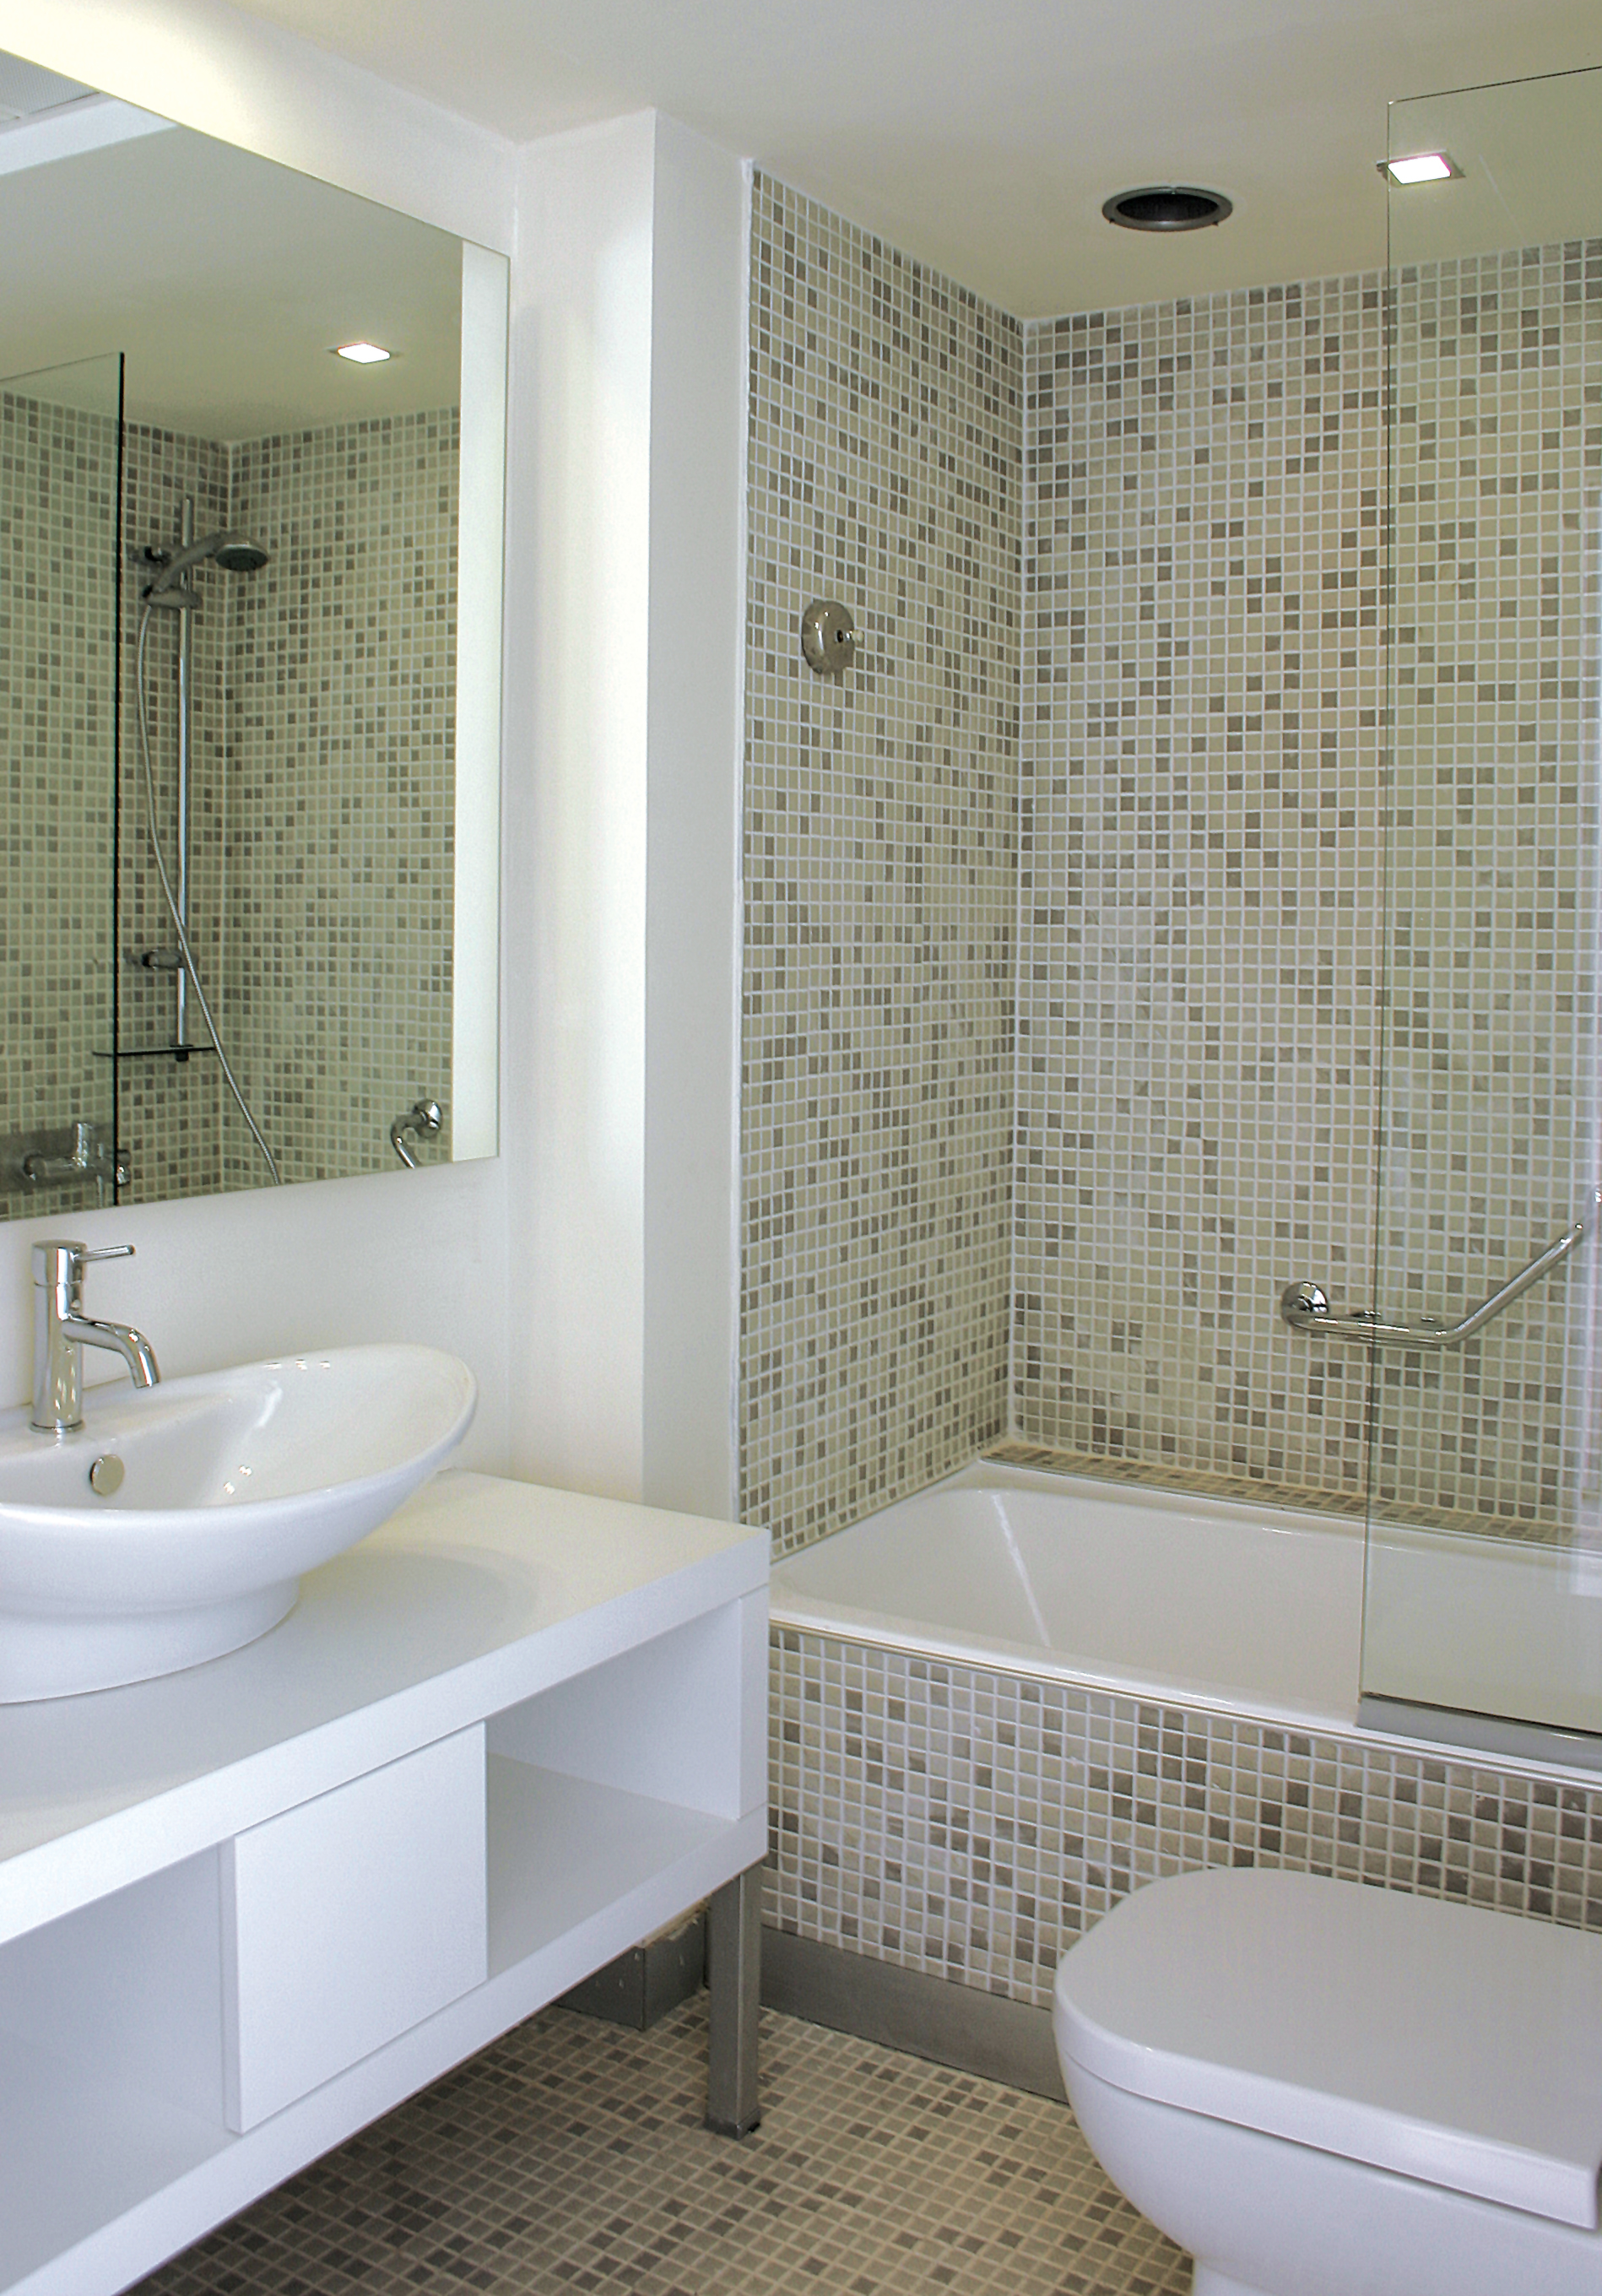 Interior Design Tips For Bathrooms Lovetoknow